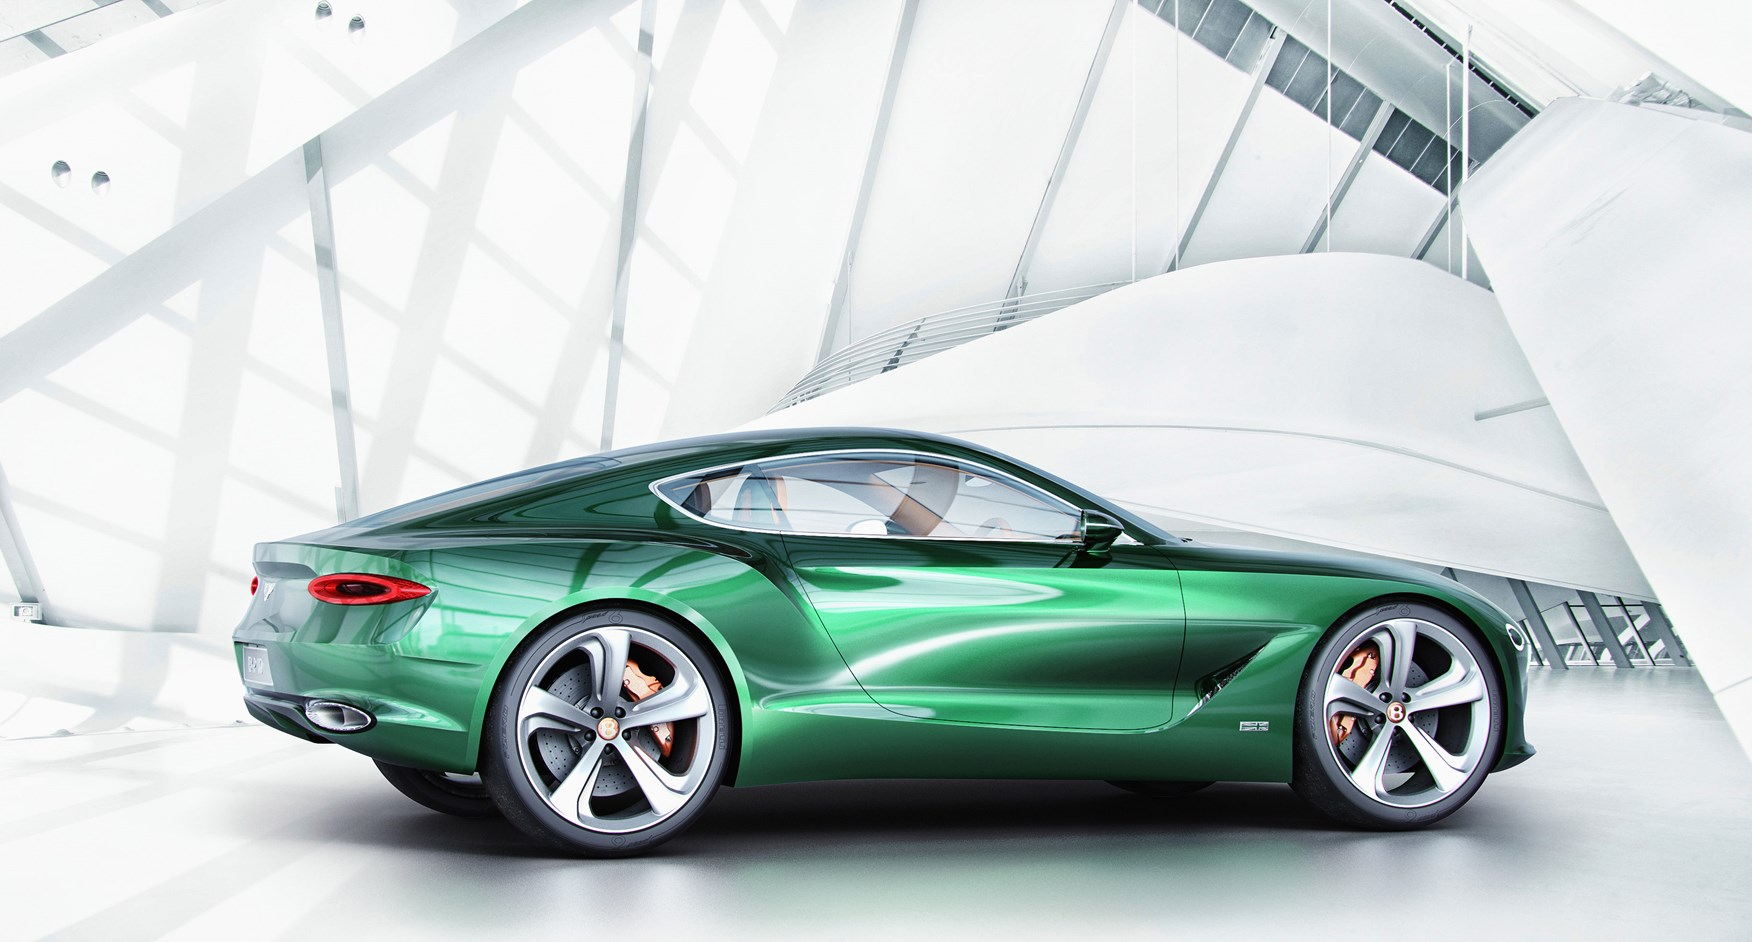 Bentley to expand with racy two-seater